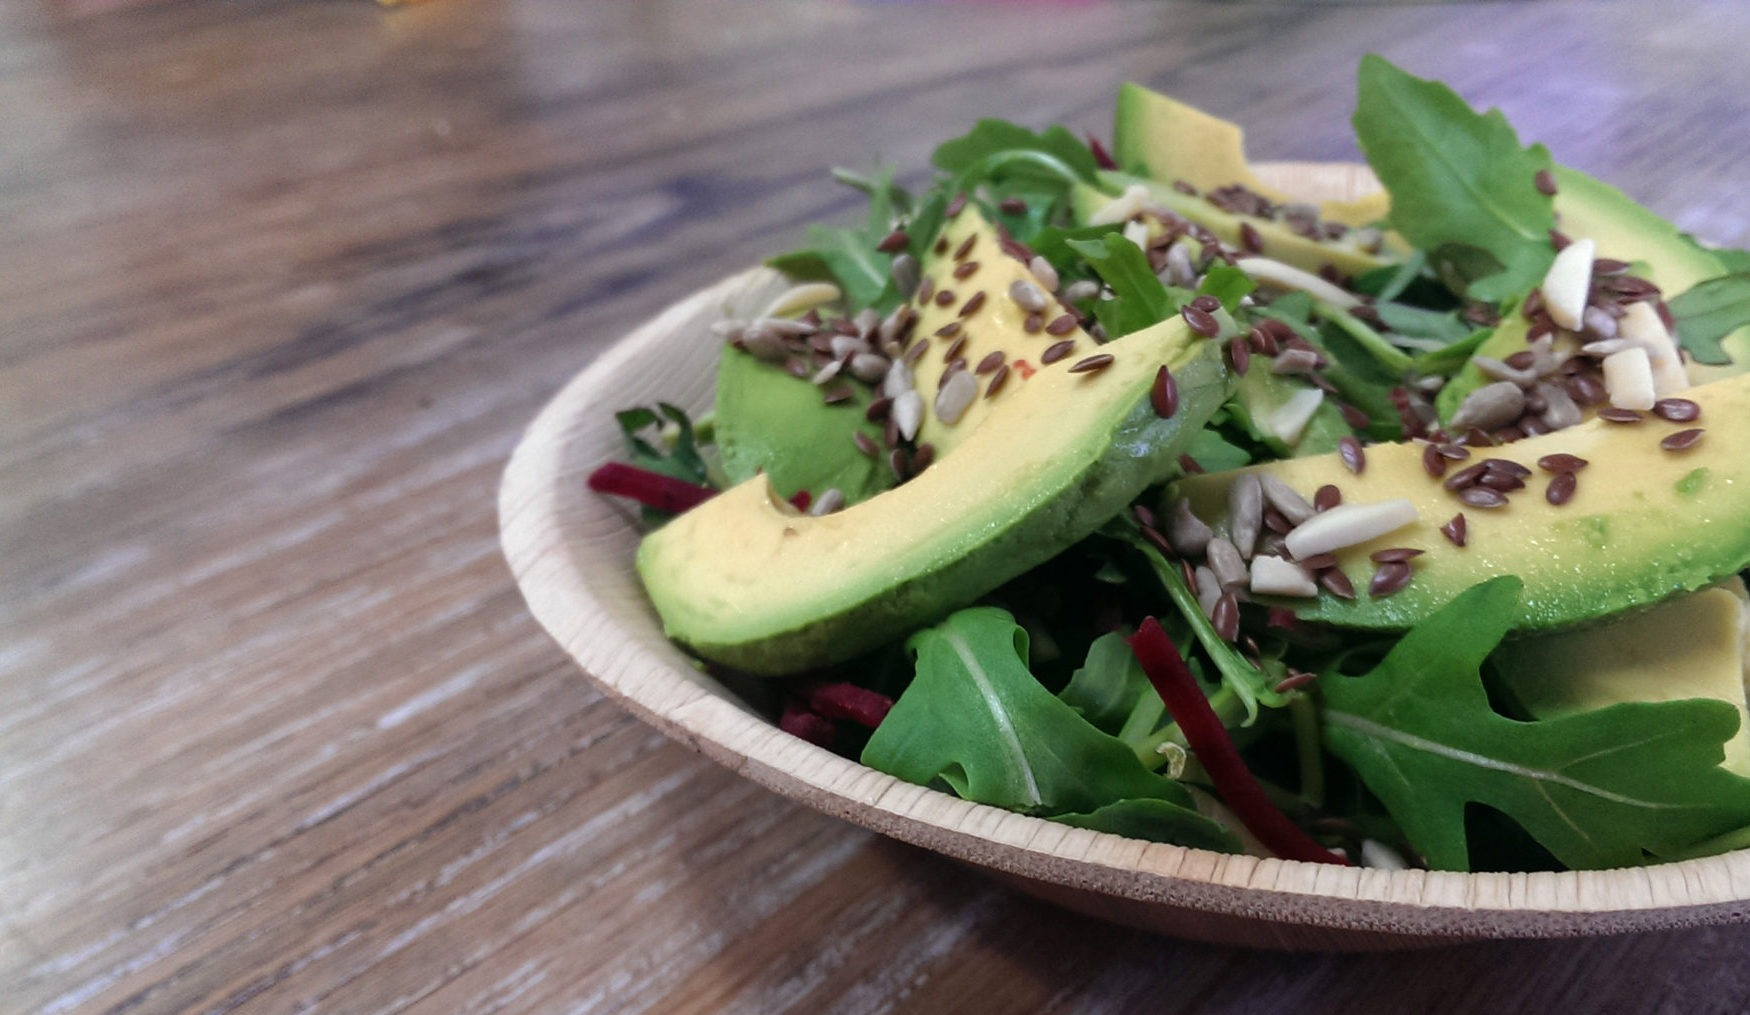 One Tree eco bowl with salad photography